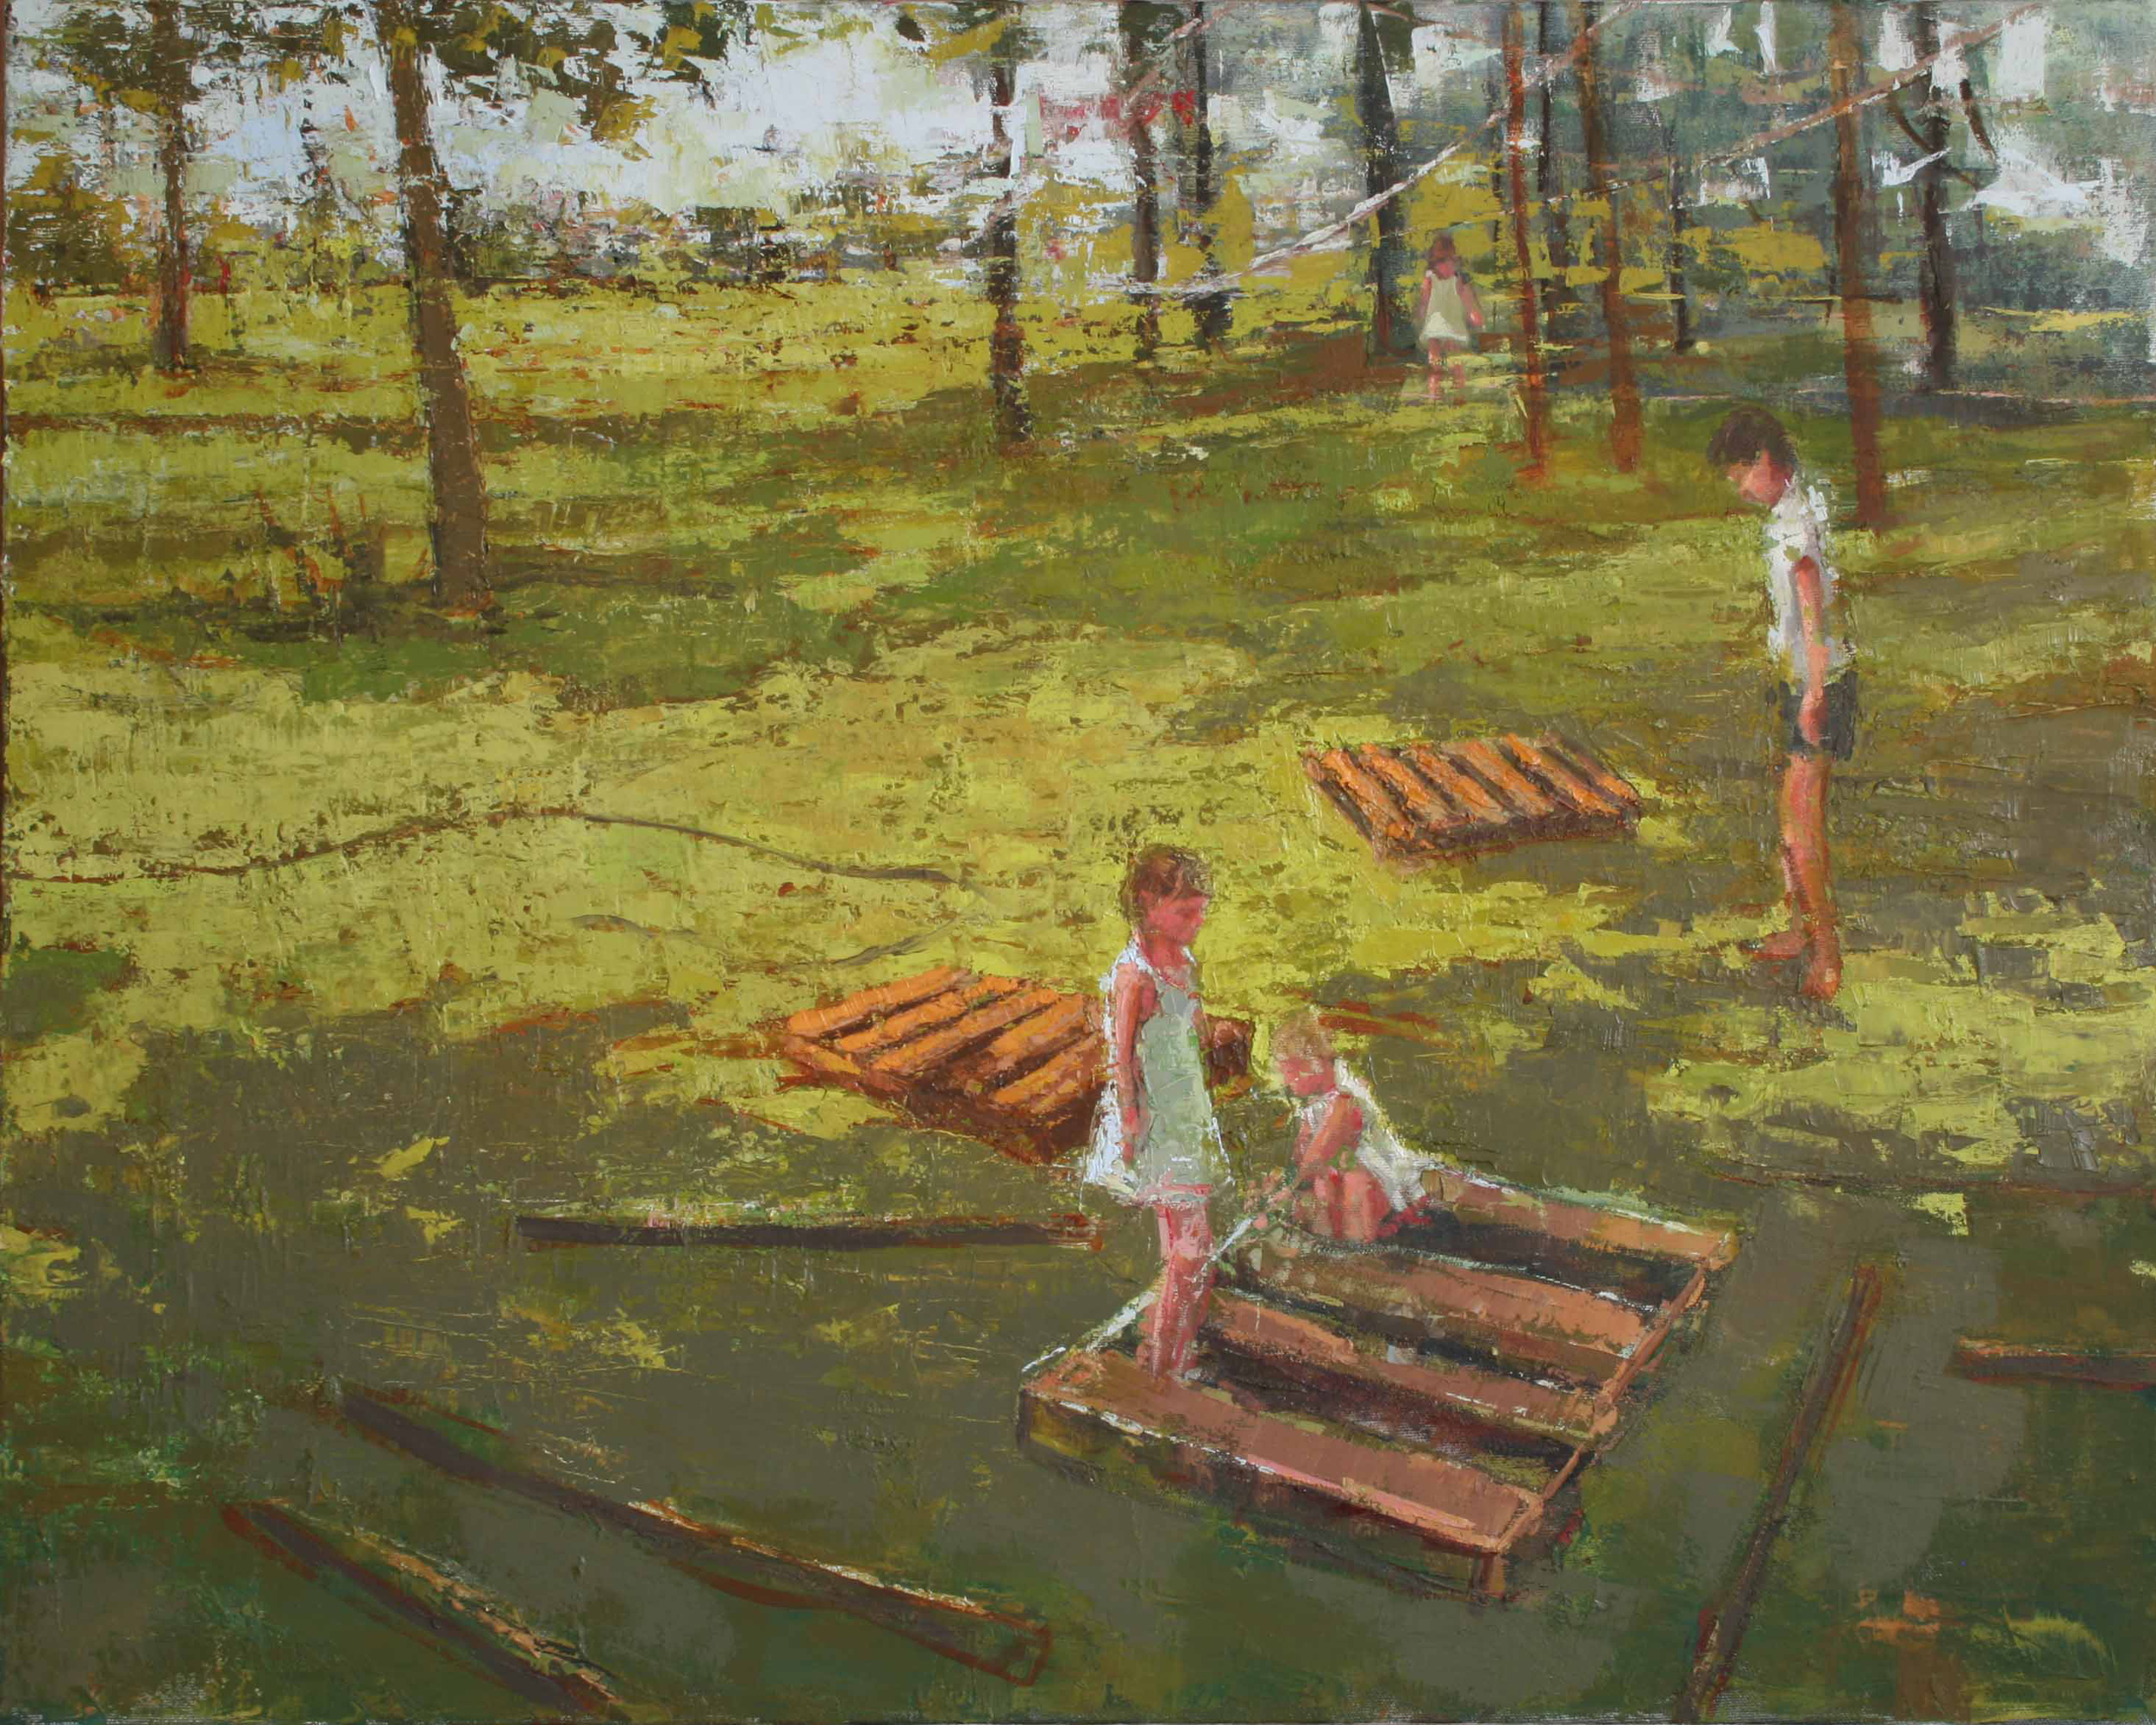 """Backyard with Wooden Palettes, oil on canvas, 24"""" x 30"""", 2010-11, Private Collection"""